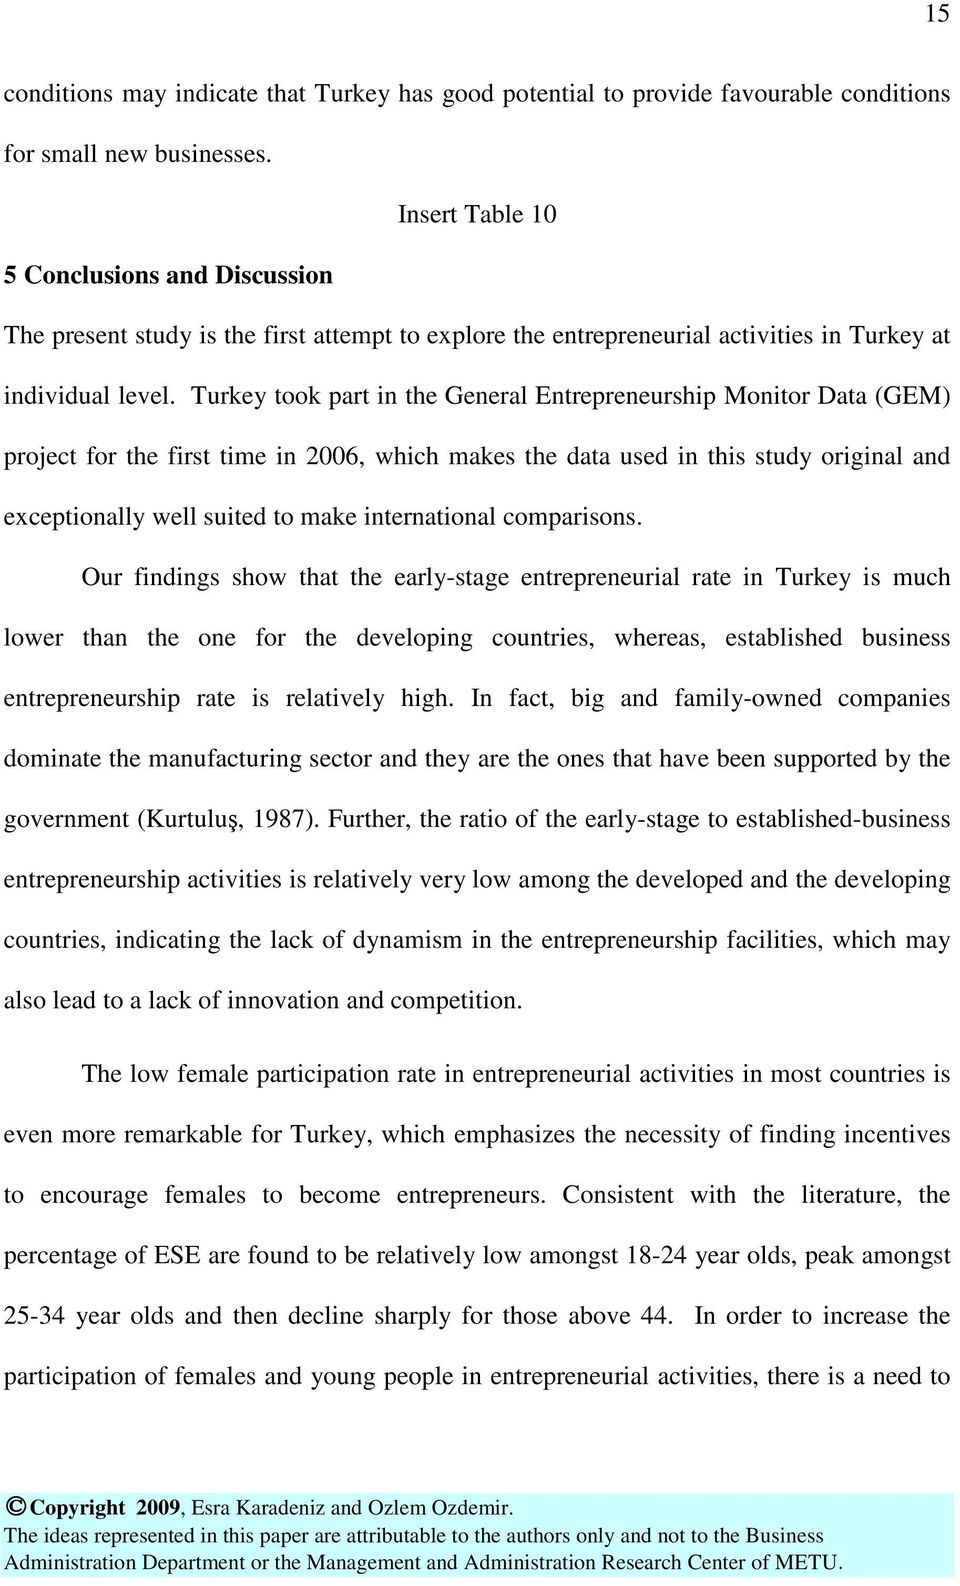 Turkey took part in the General Entrepreneurship Monitor Data (GEM) project for the first time in 2006, which makes the data used in this study original and exceptionally well suited to make